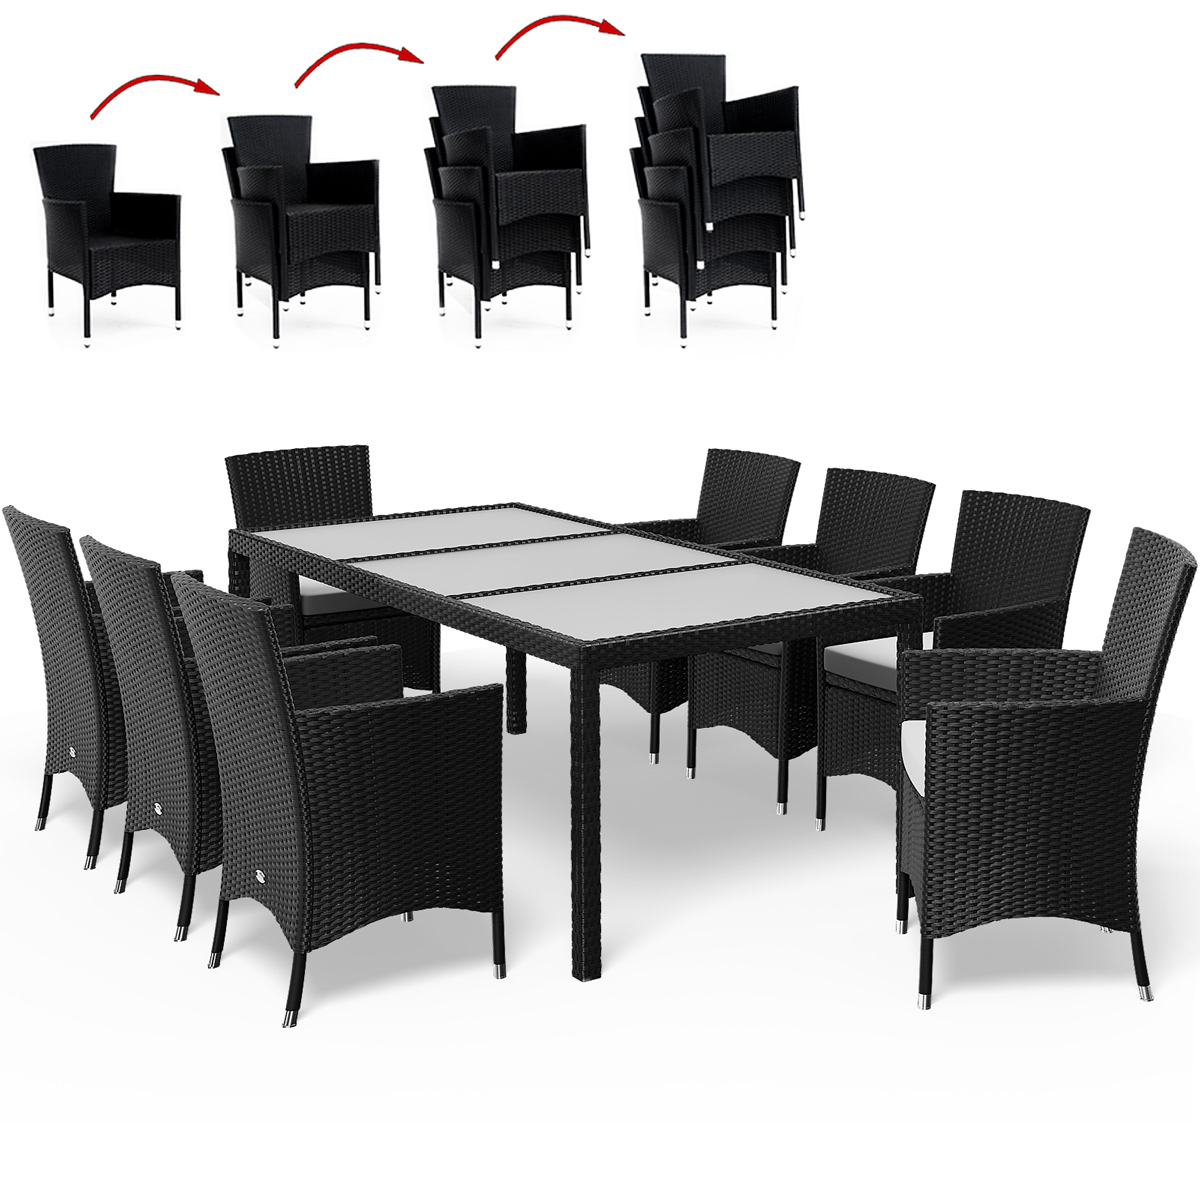 salon de jardin 17 pcs ensemble table 8 chaises alu. Black Bedroom Furniture Sets. Home Design Ideas